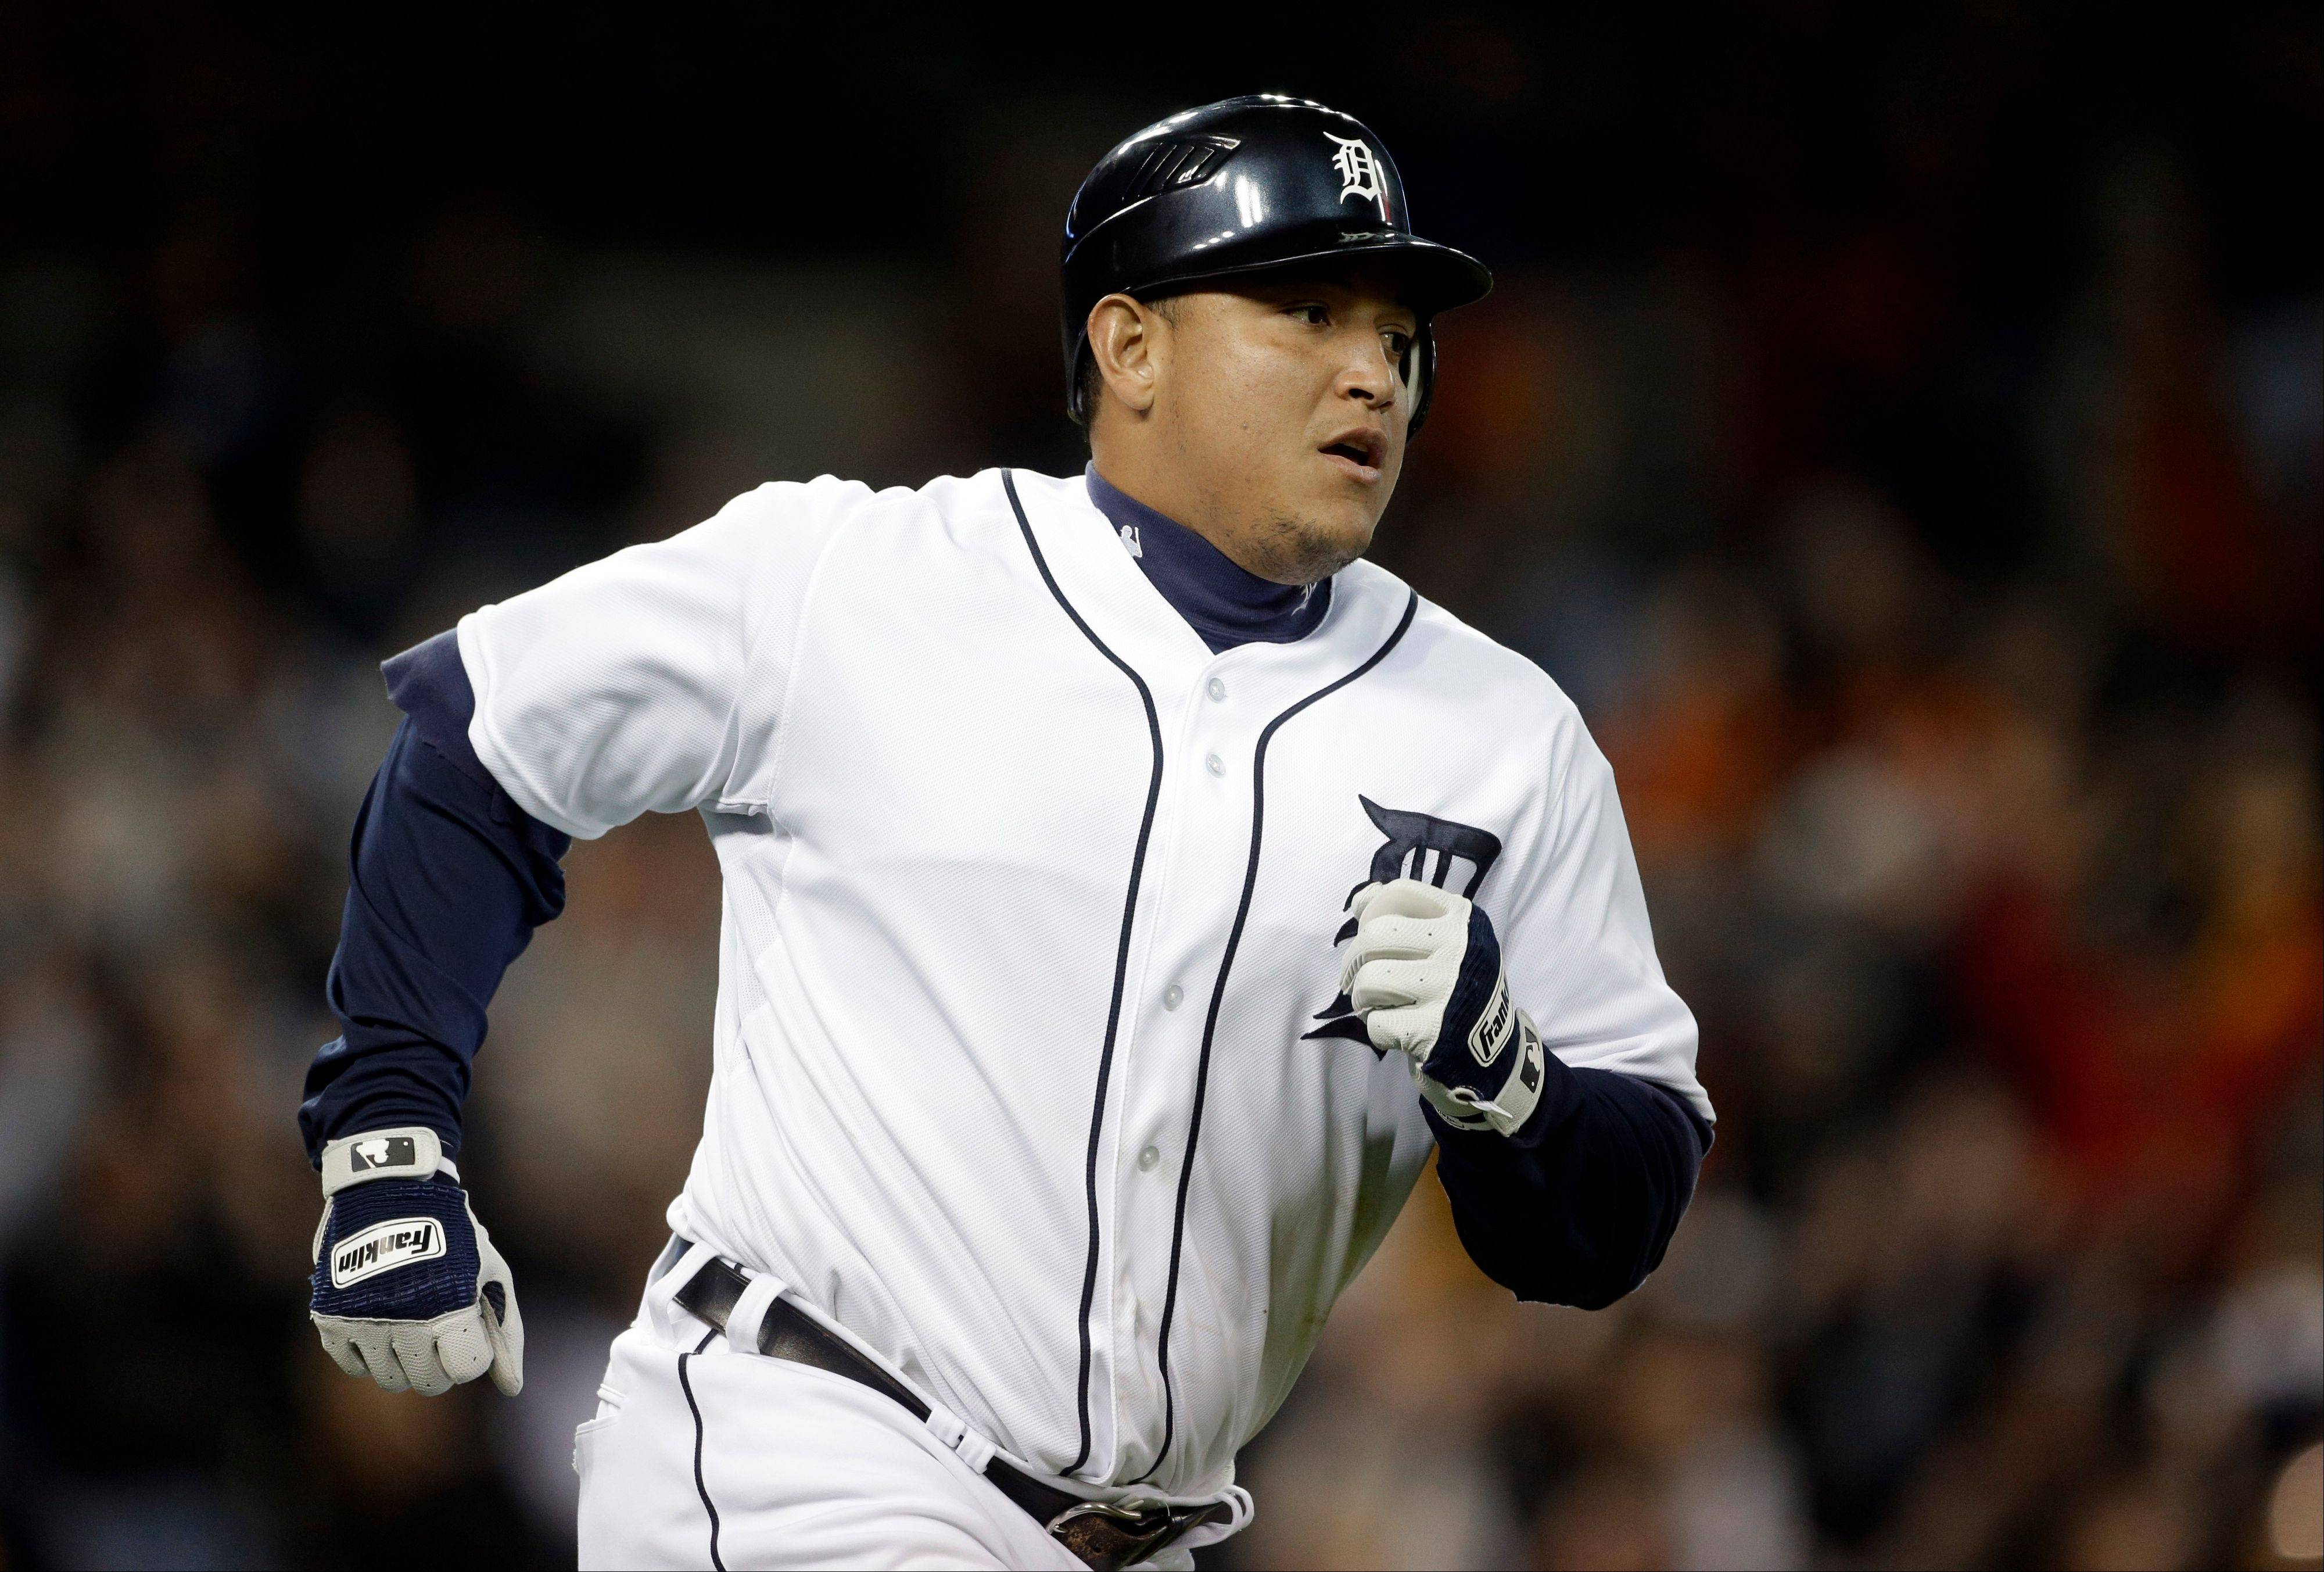 The Detroit Tigers' Miguel Cabrera runs the bases Tuesday after hitting a grand slam against the Oakland Athletics in the eighth inning.